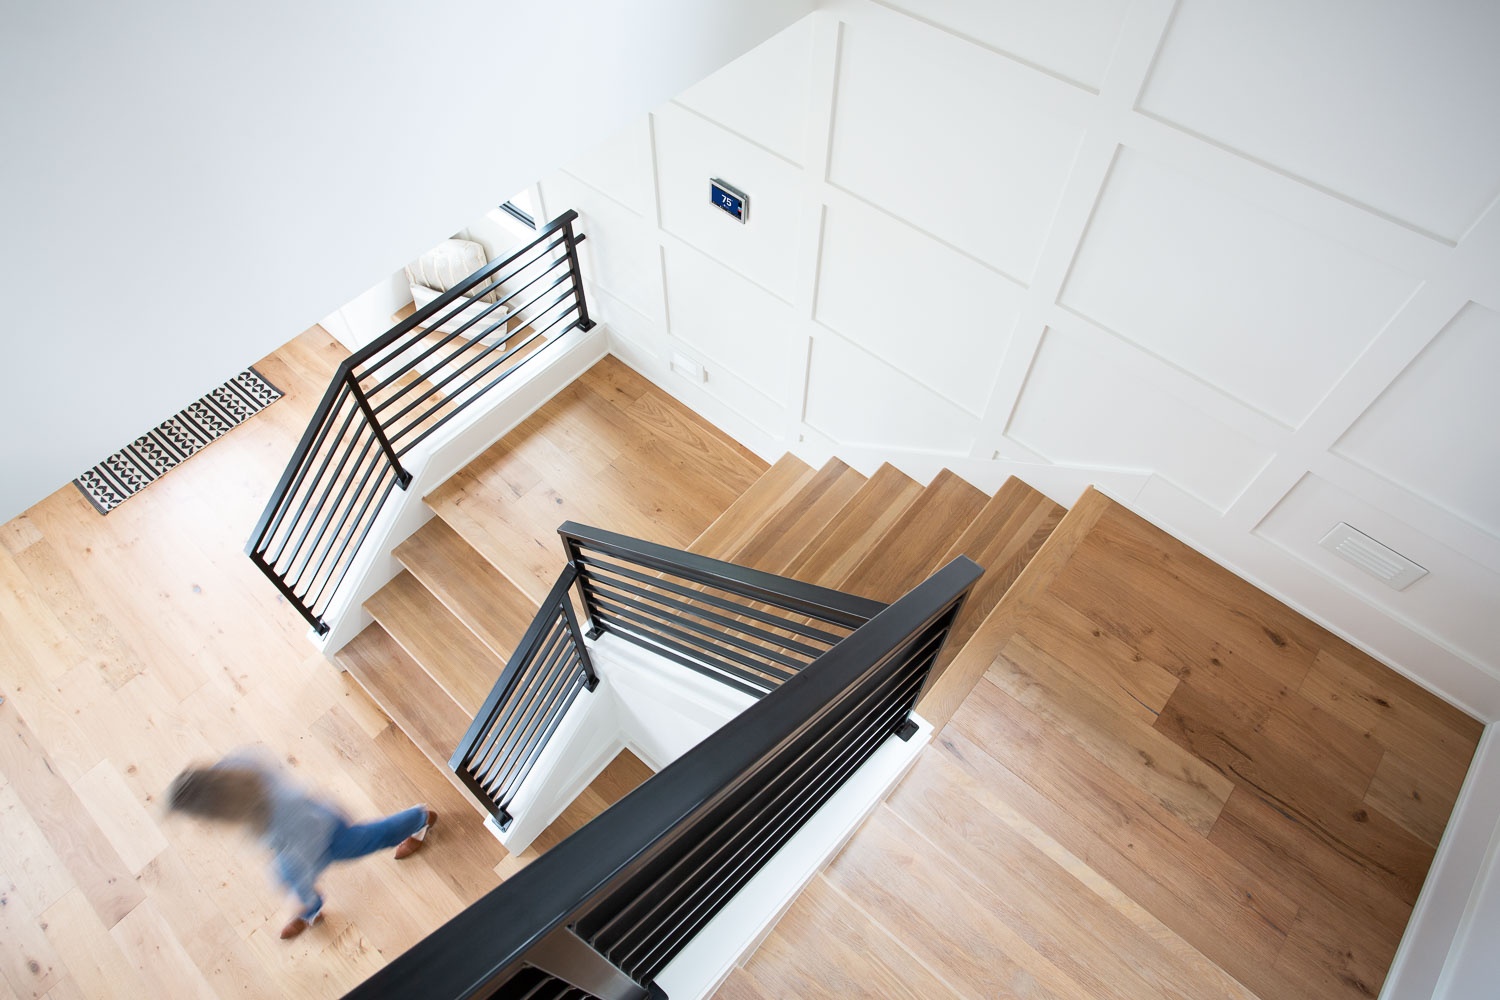 Down_Stair Well_With Figure_1.jpg